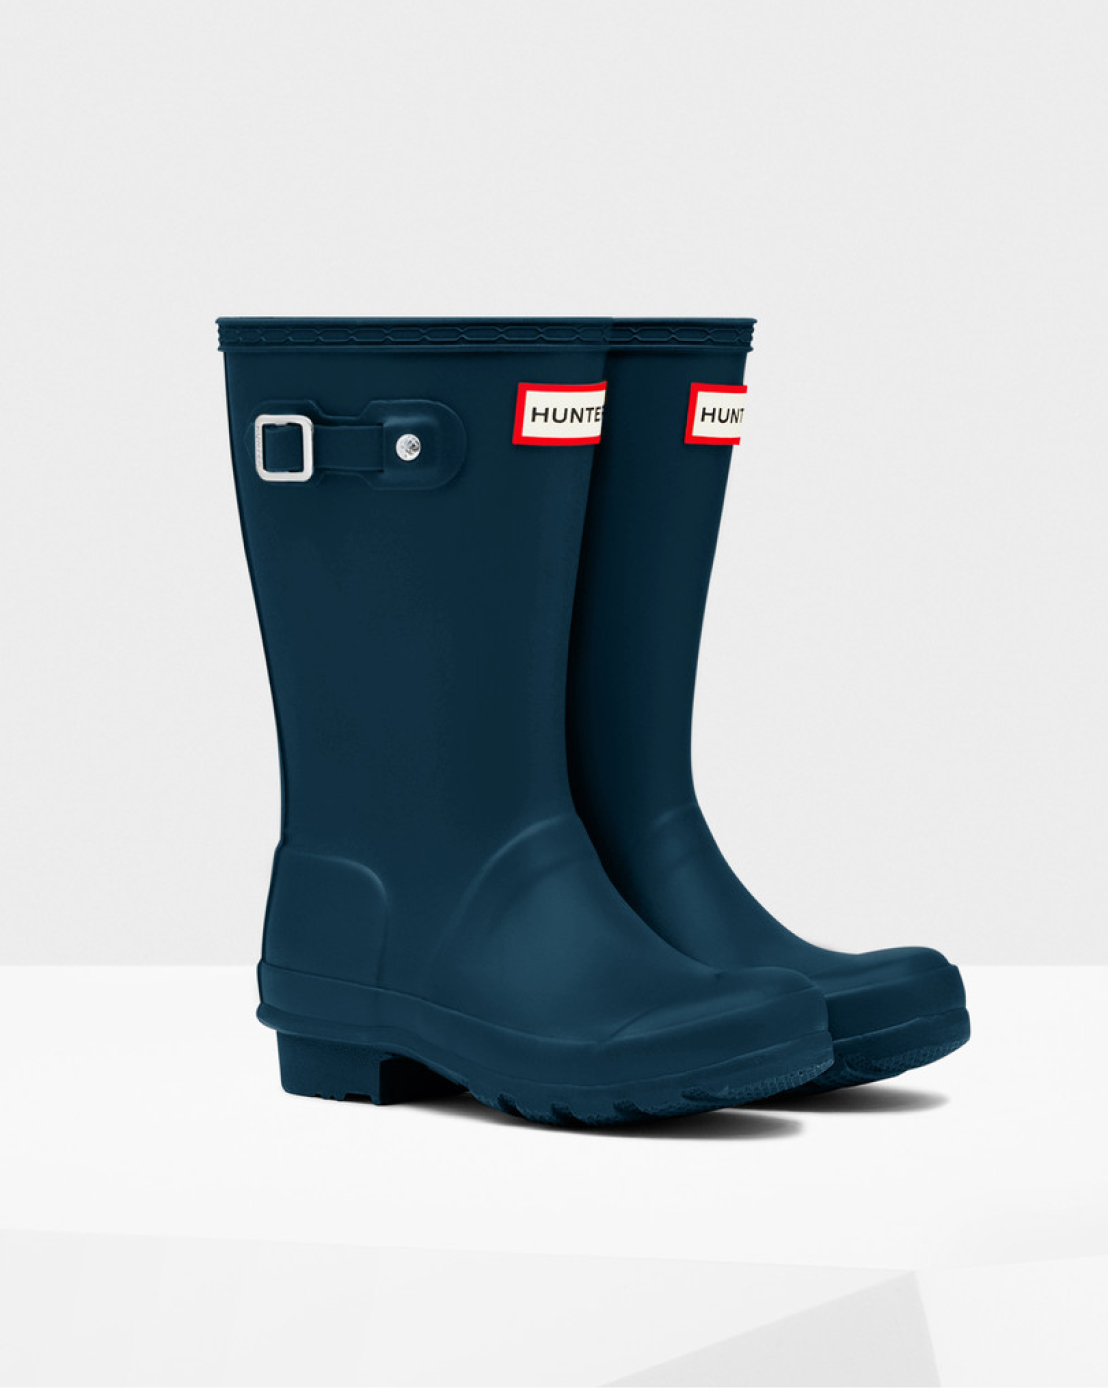 ORIGINAL KIDS WELLINGTON BOOTS